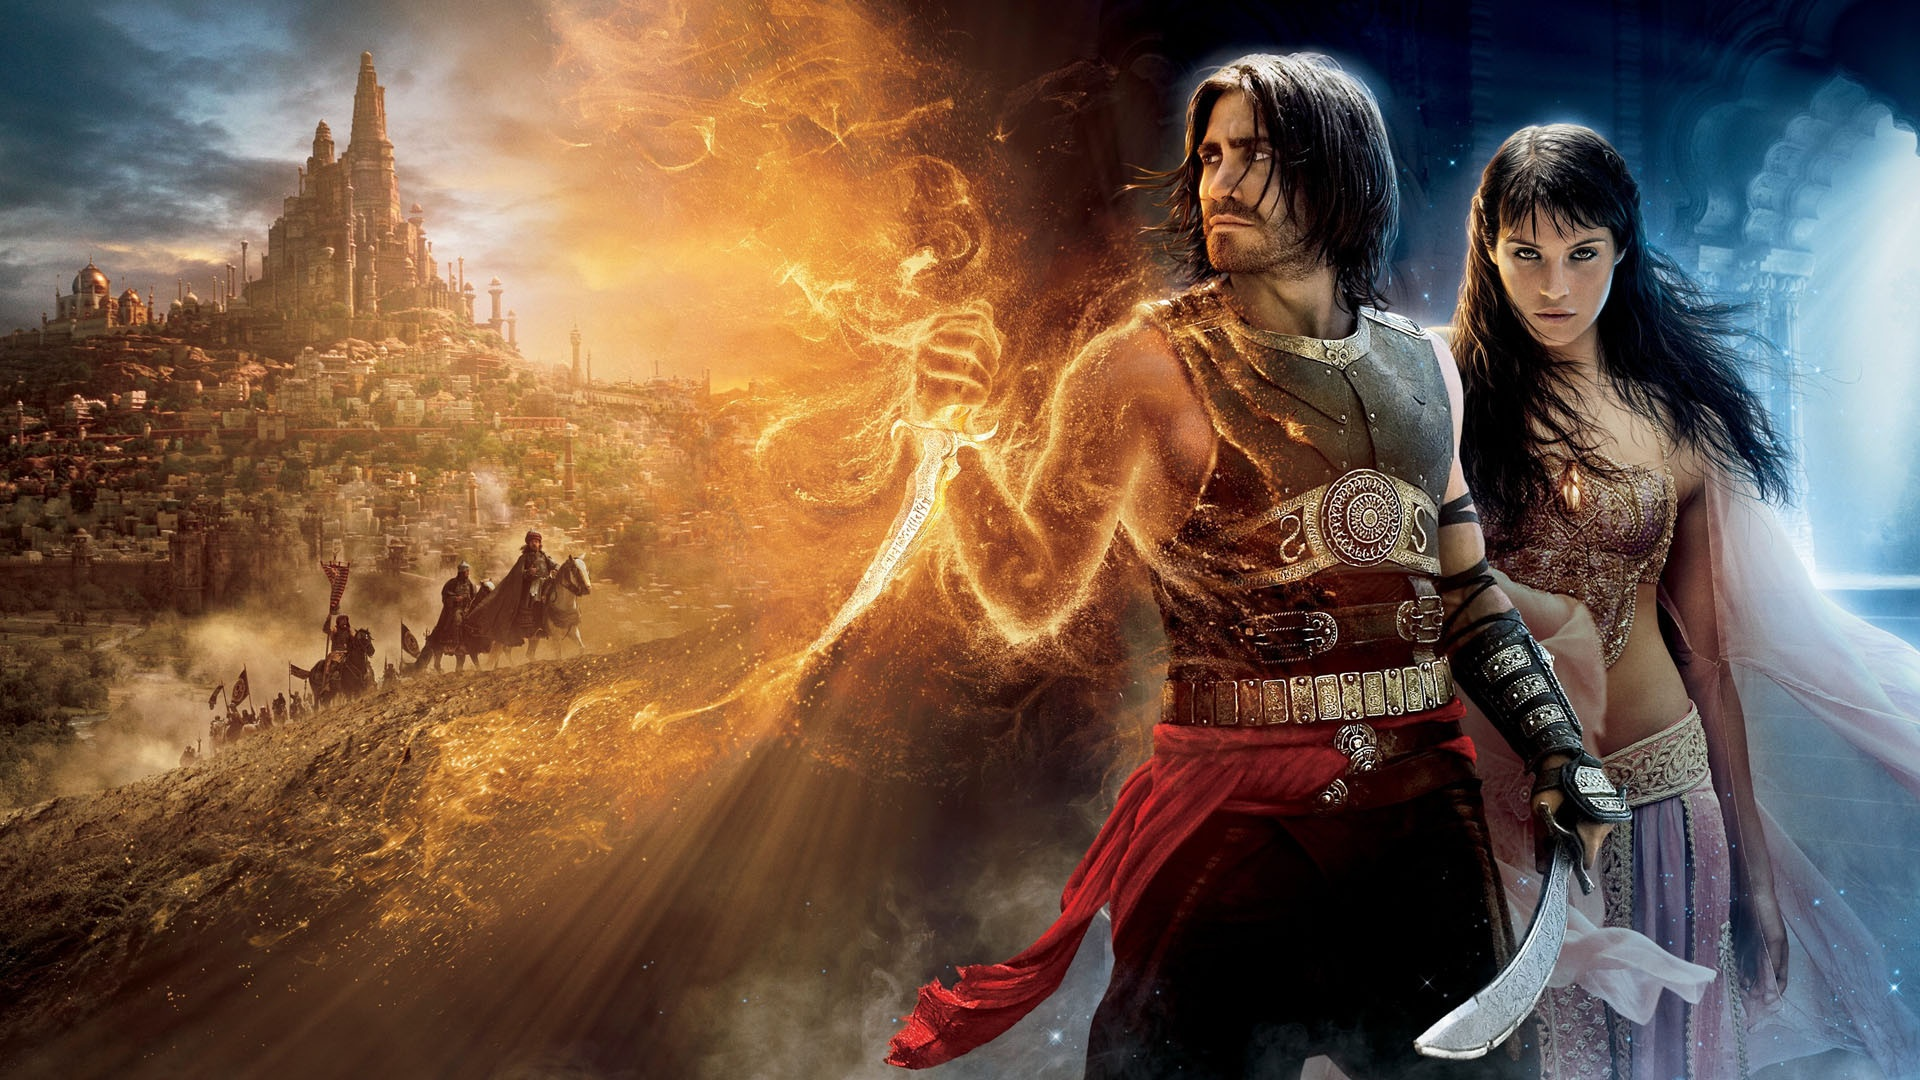 Prince of persia: the two thrones hd wallpapers and background.